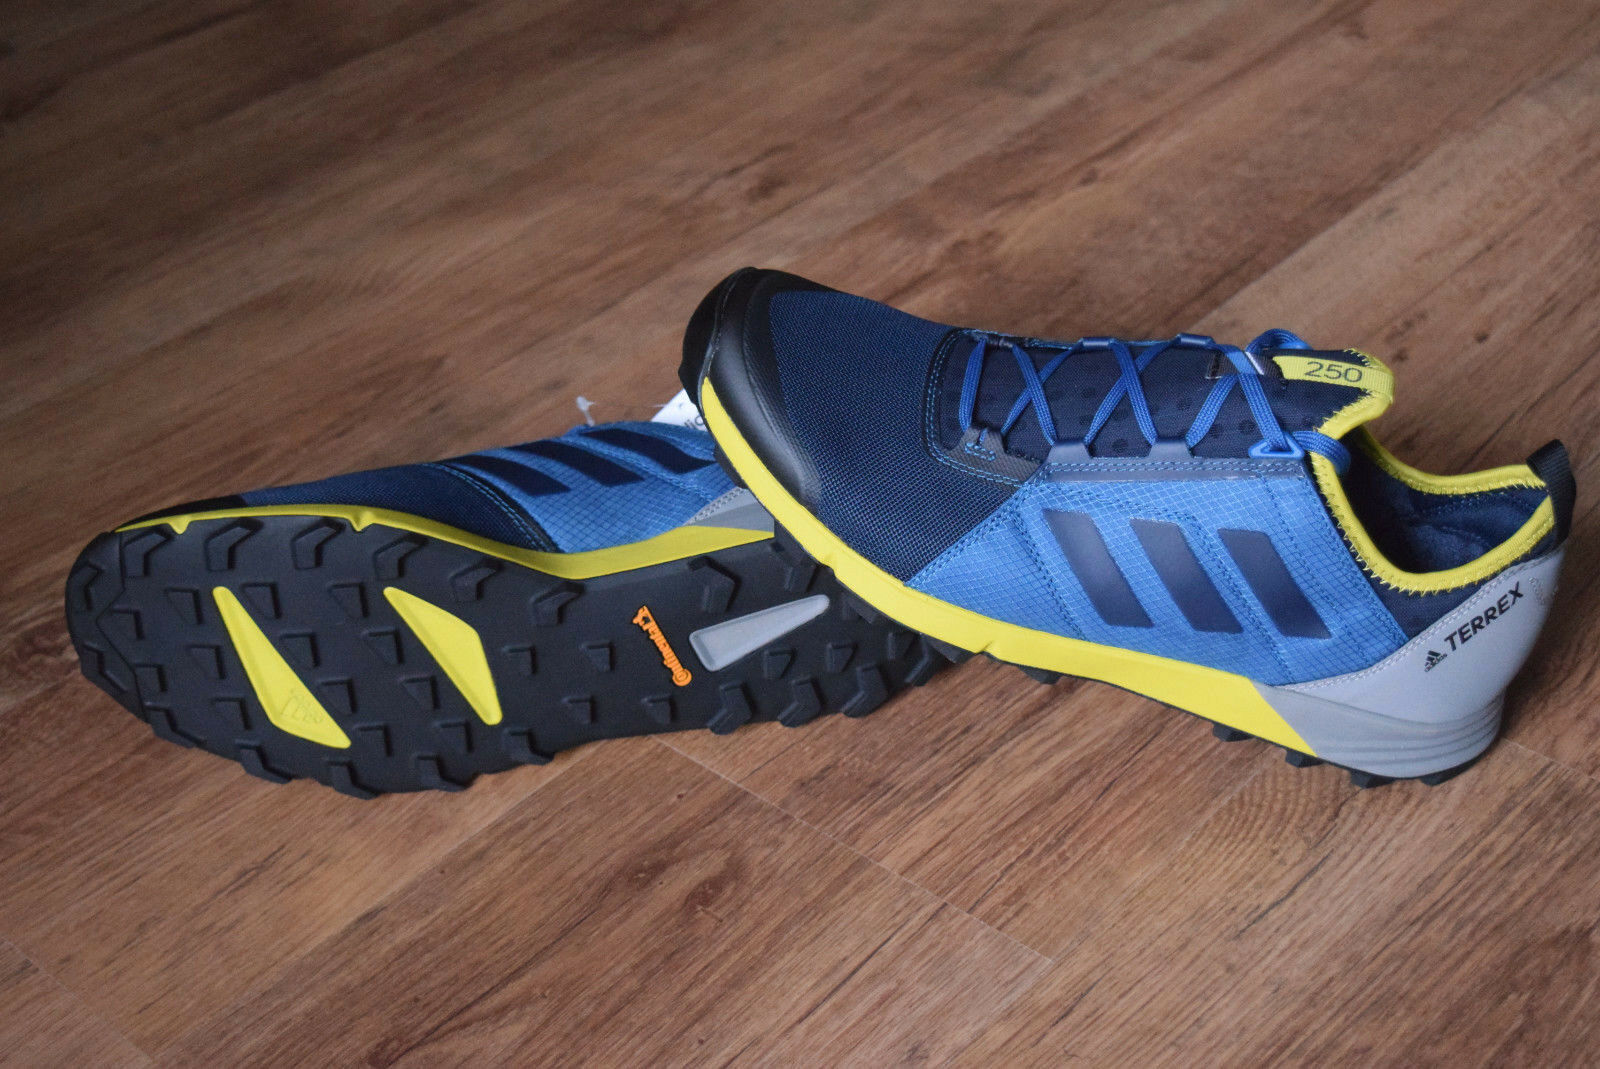 Adidas Terrex Agravic Speed 40,5 46 46,5 47 Trail BB1958 Running shoes Fast Ax 2